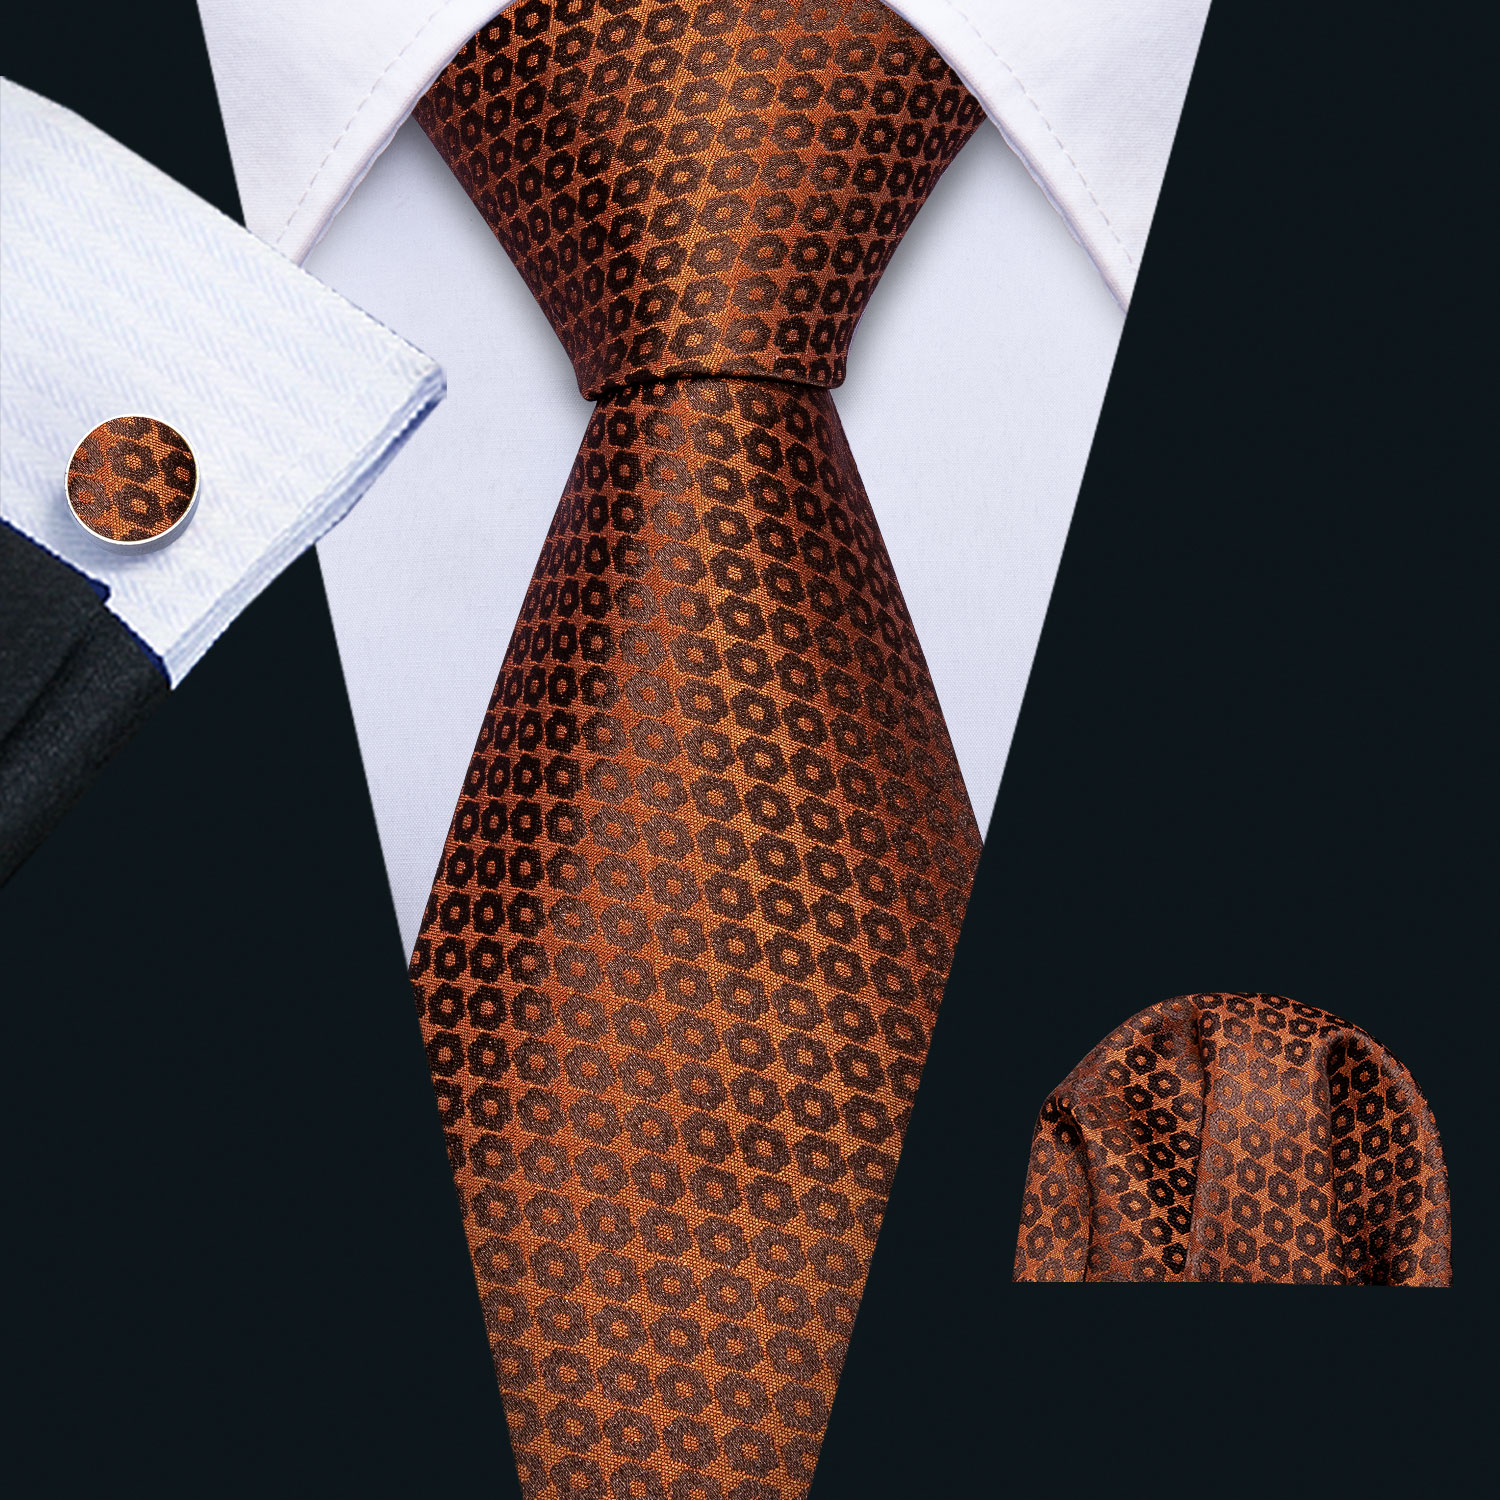 2019 Mens Wedding Tie Brown Foral Silk Tie Hanky Set Barry.Wang Jacquard Woven Fashion Designer Neck Ties For Men Party FA-5142